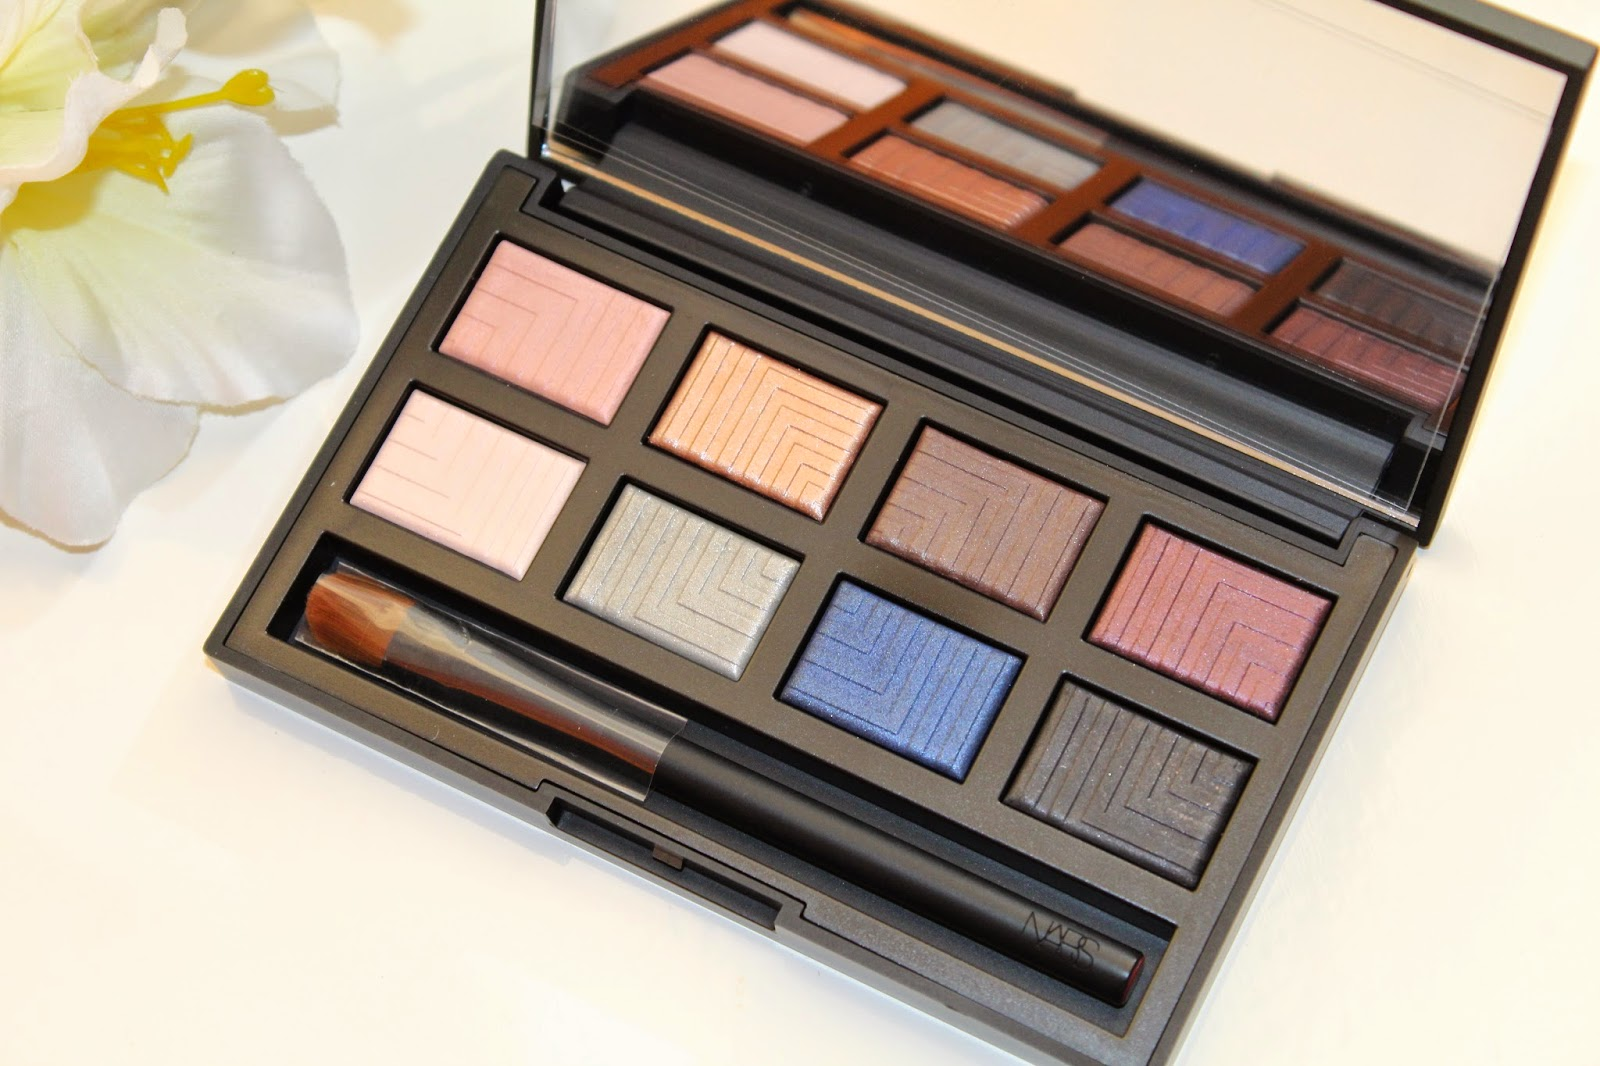 Nars Dual-Intensity Eyeshadow Palette swatches and review